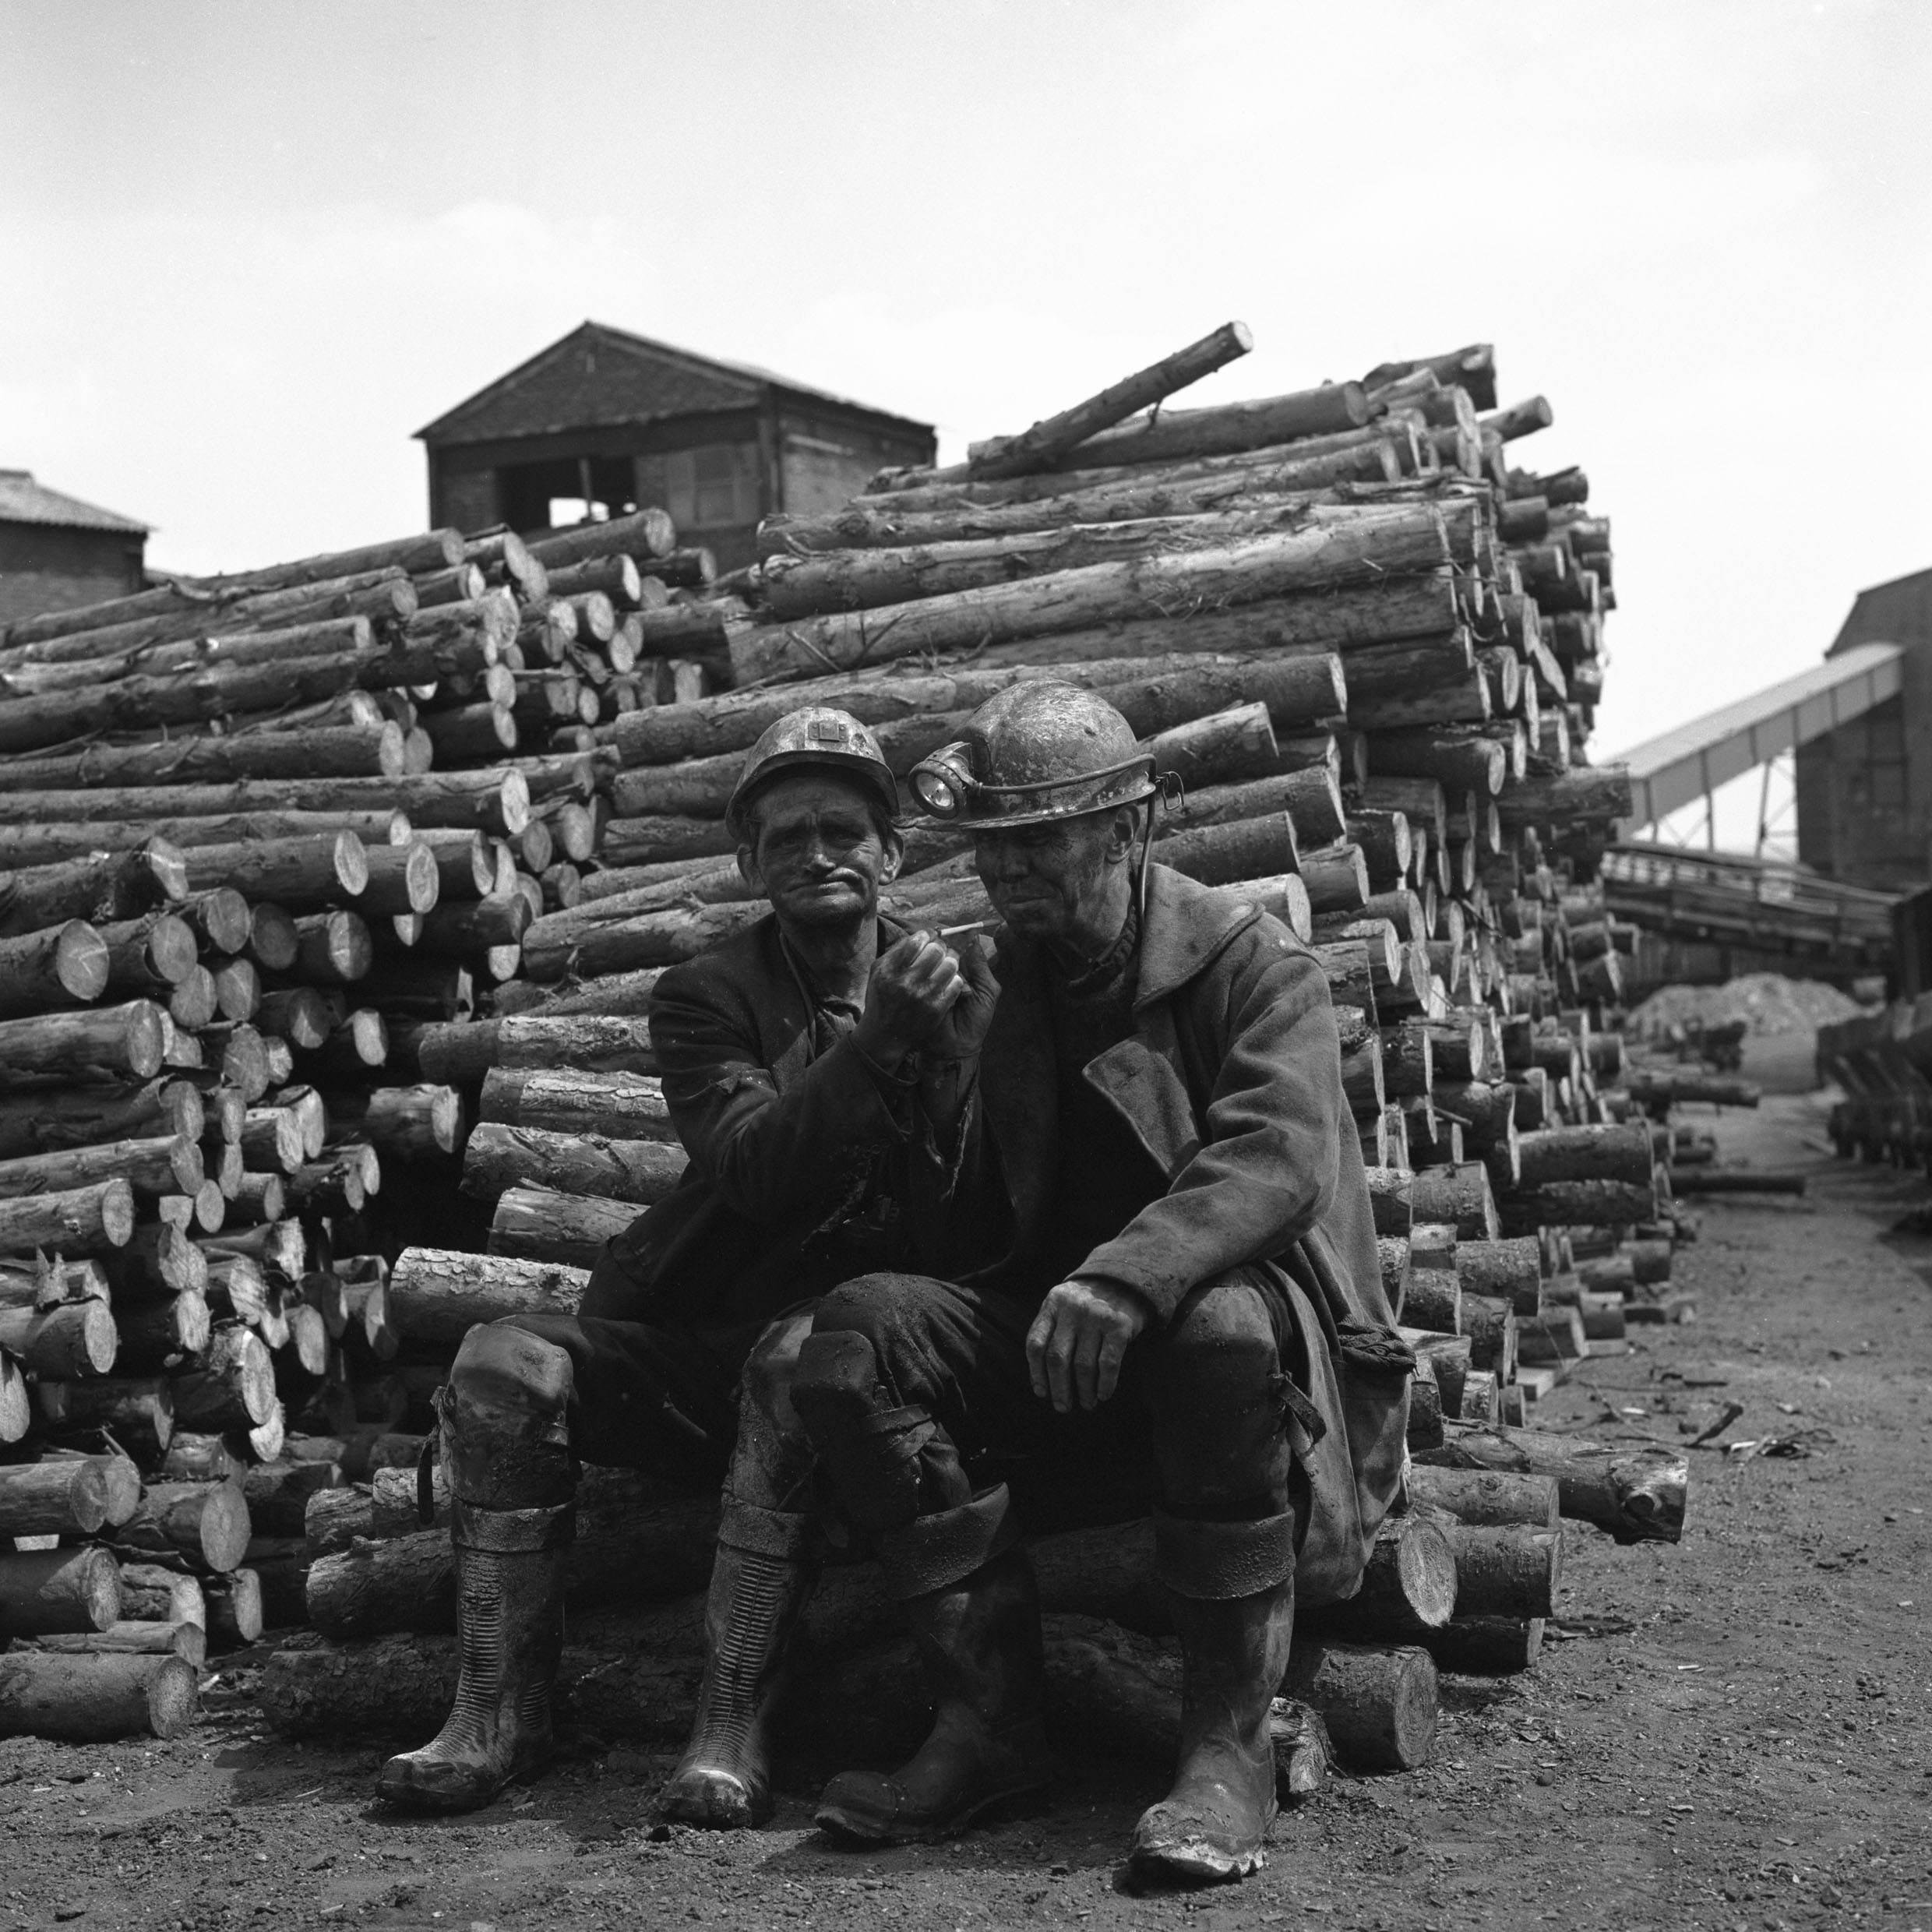 Two Blaenavon miners in the timber yard at the end of the morning shift, 1978.